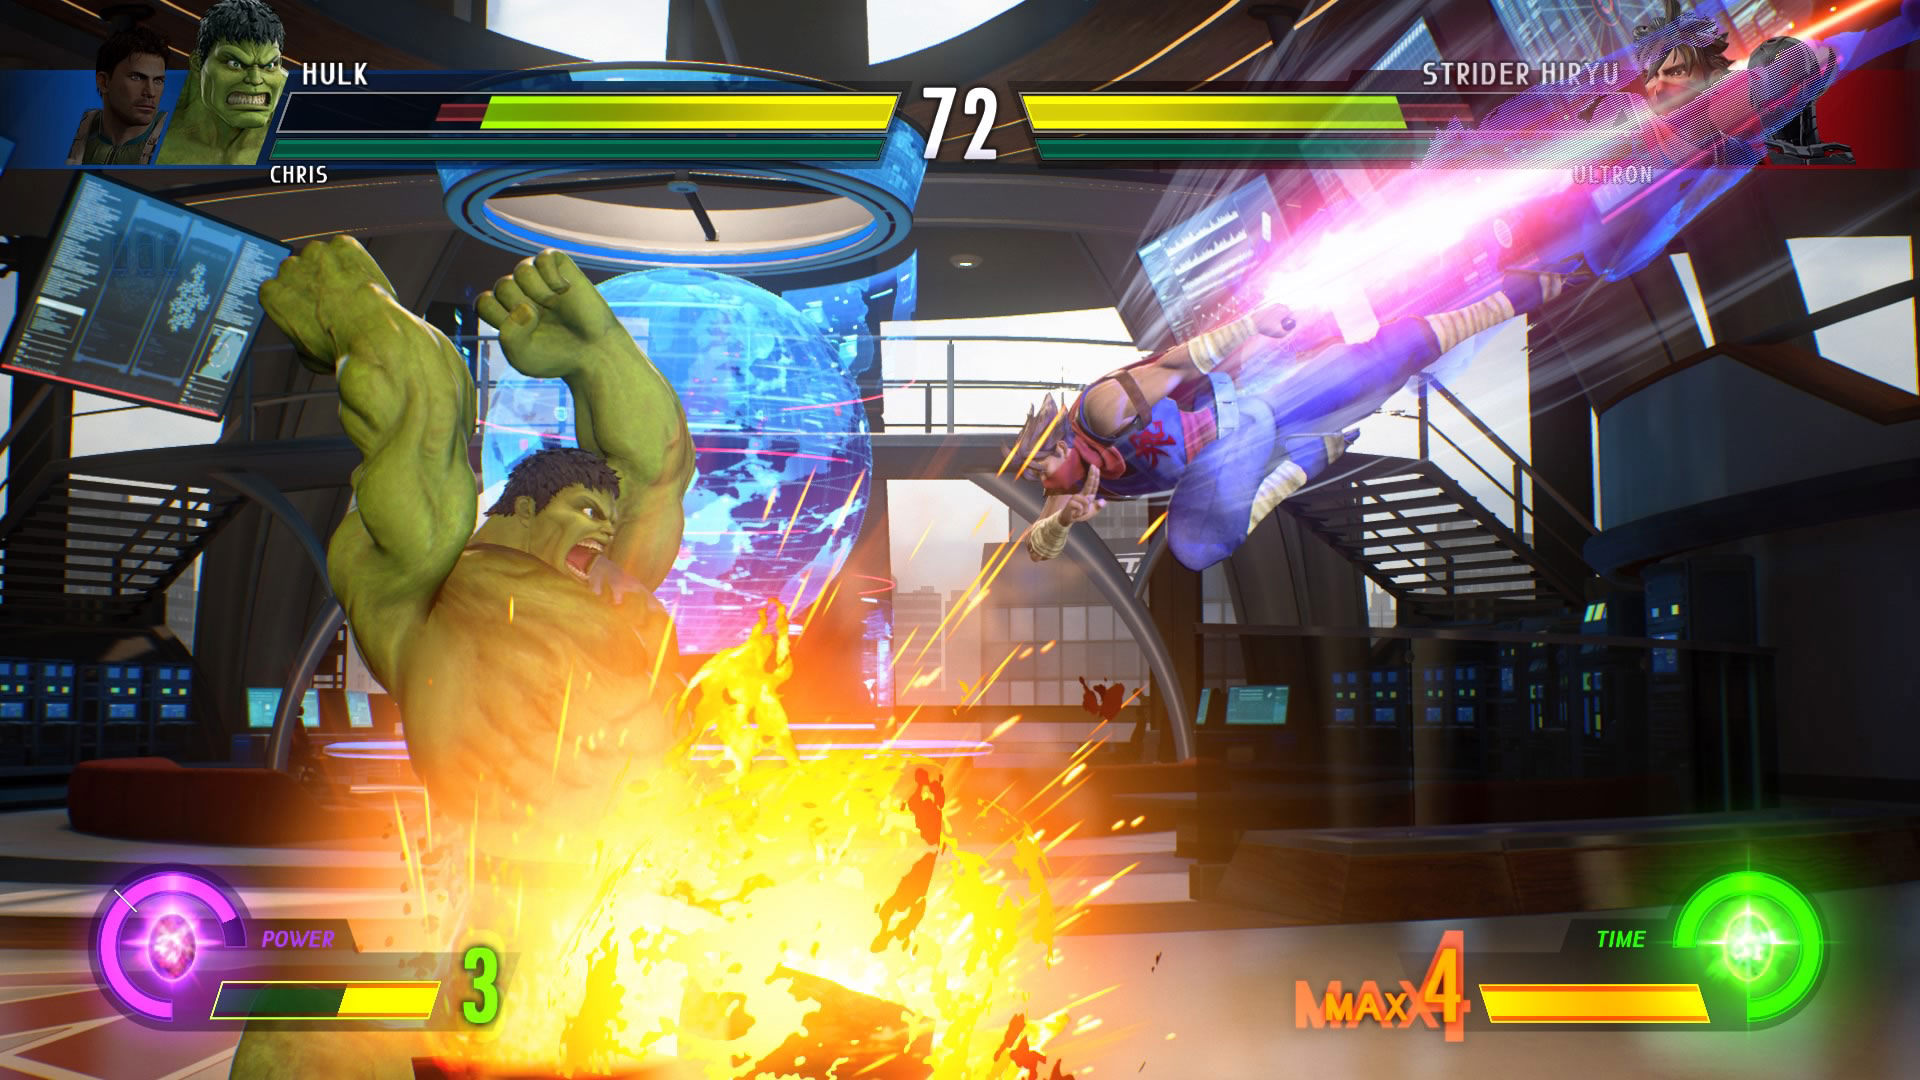 Marvel vs. Capcom: Infinite gameplay screenshots 6 out of 6 image gallery